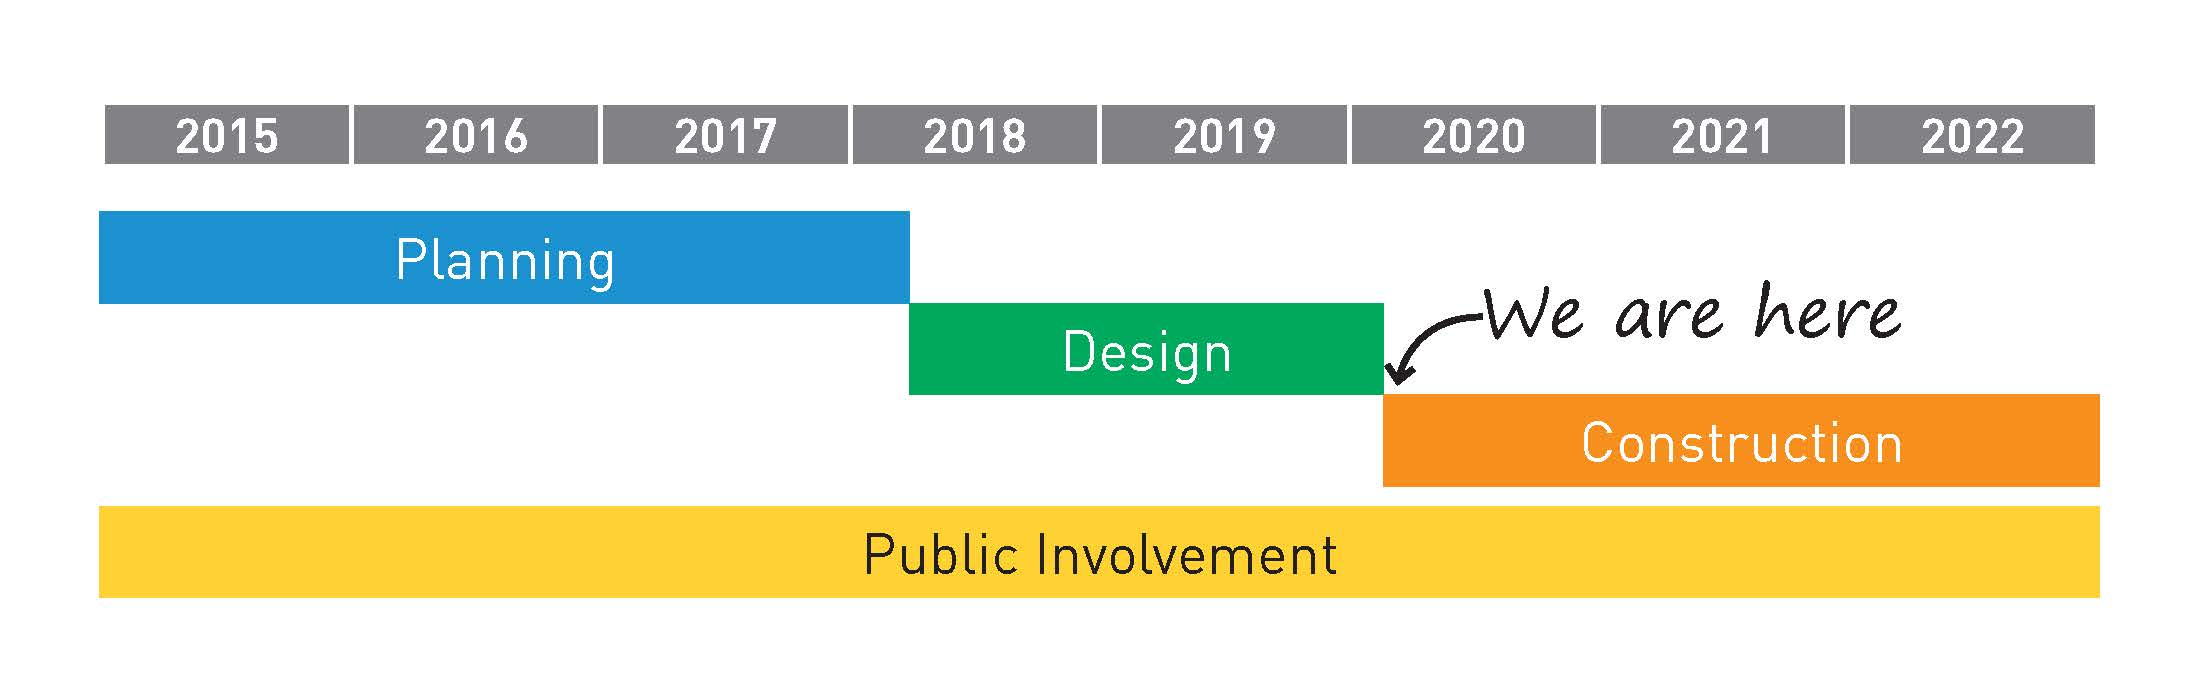 Project planning and design occurred between 2015 and 2020. Construction will last through 2022.